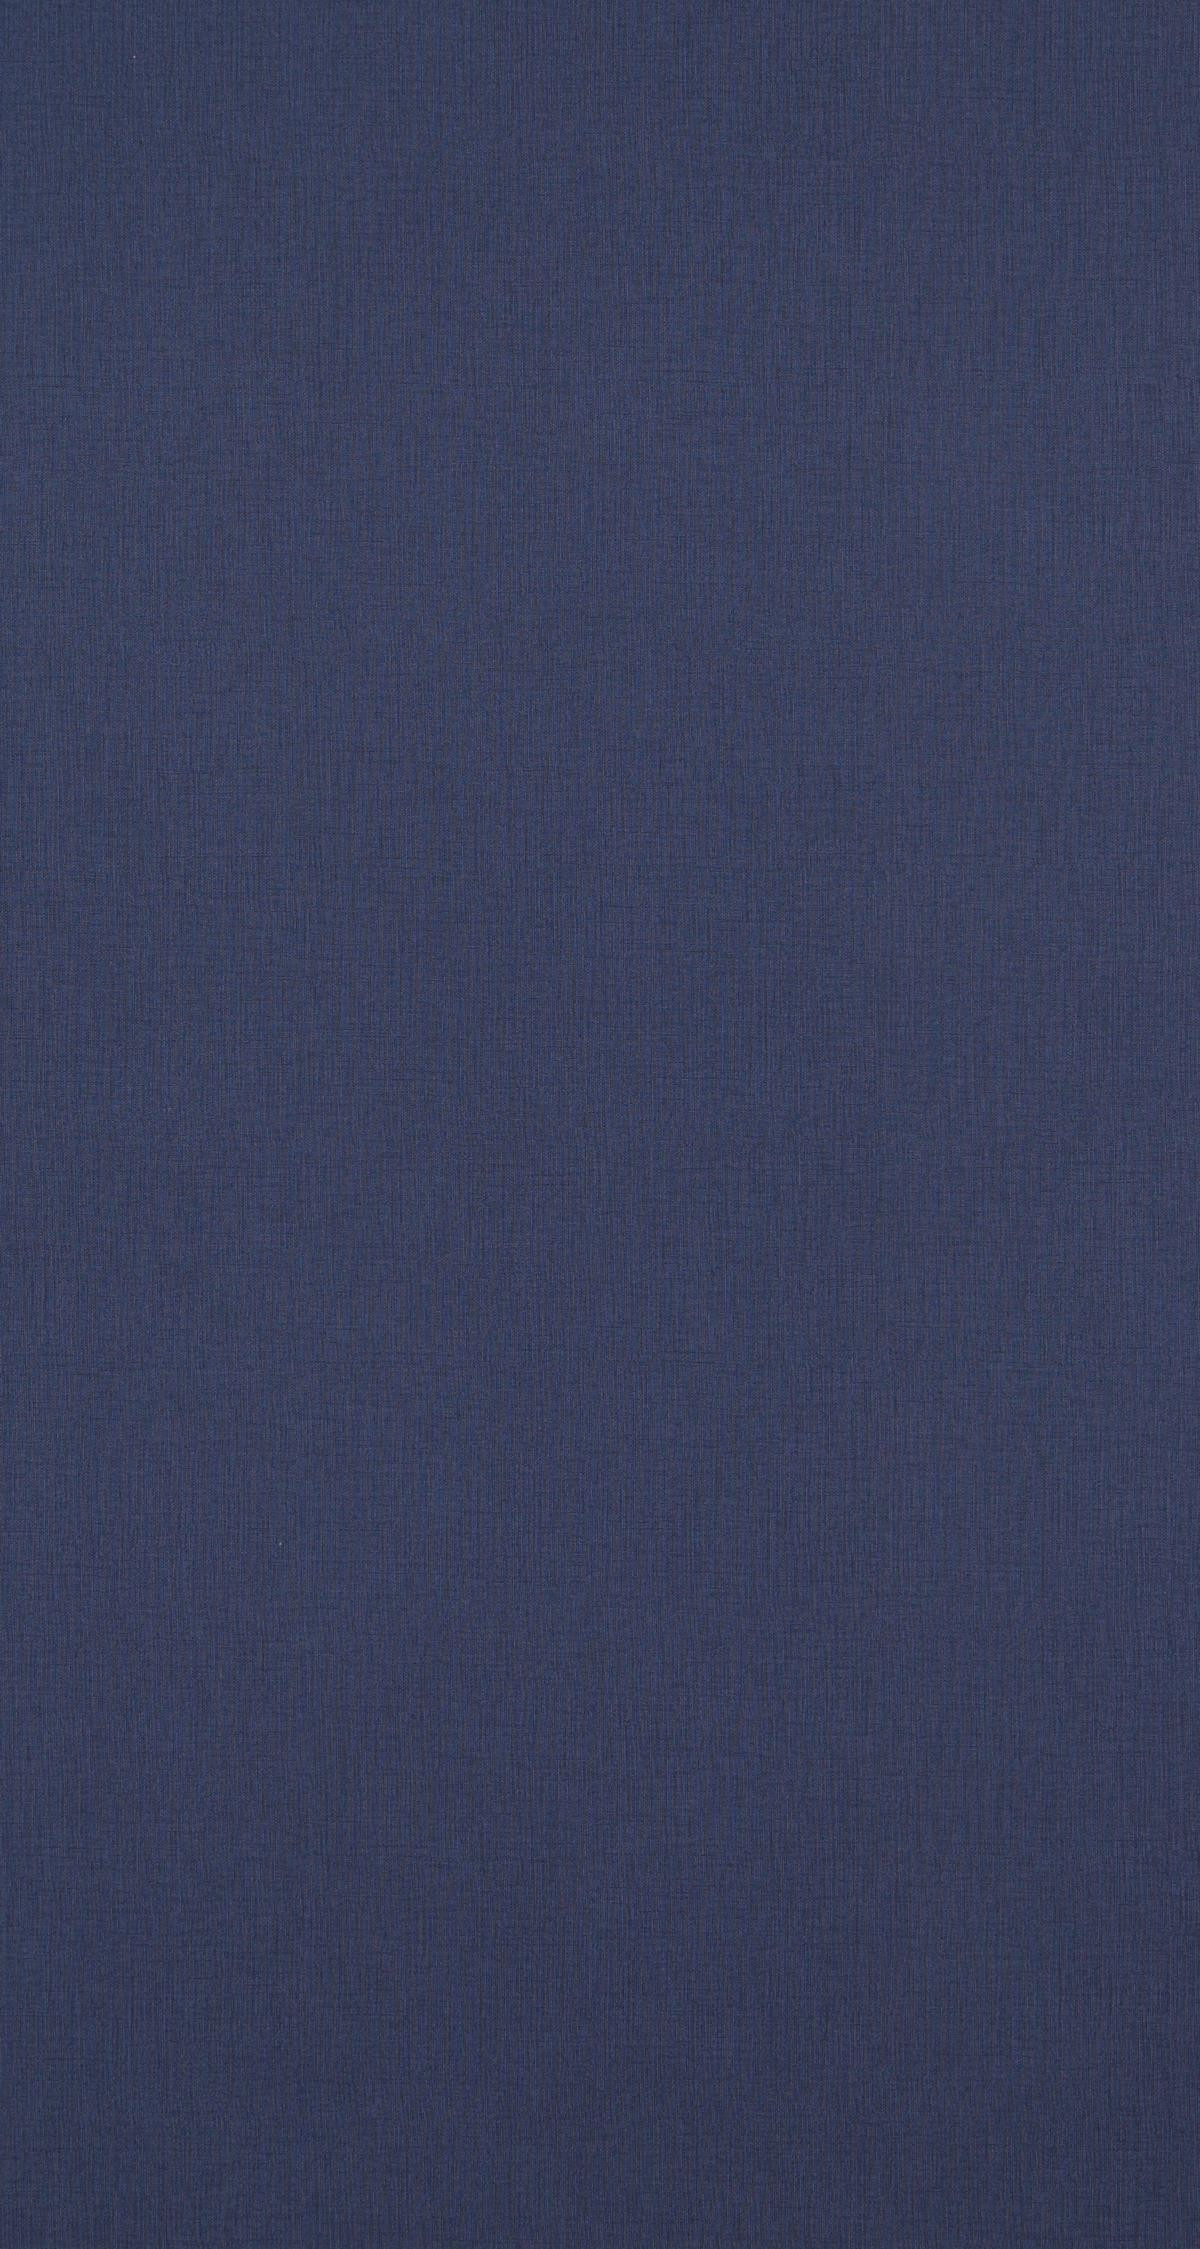 1200x2249 NB single coloured wallpaper Narciso navy-blue